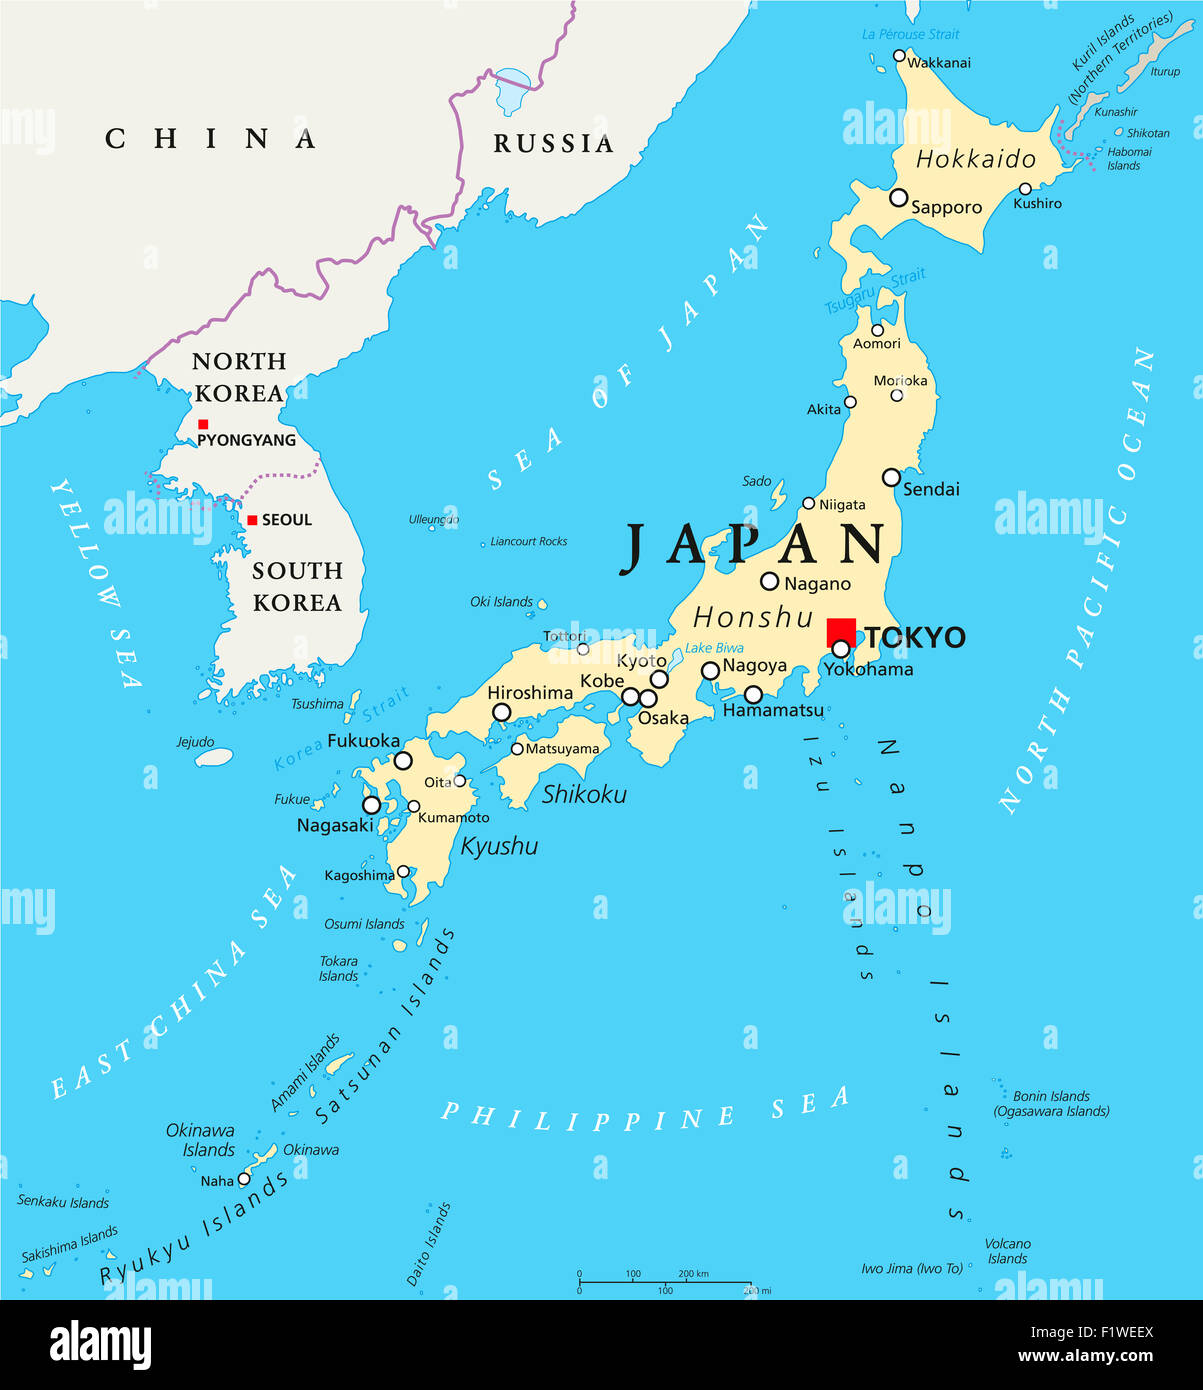 Japan Political Map With Capital Tokyo National Borders